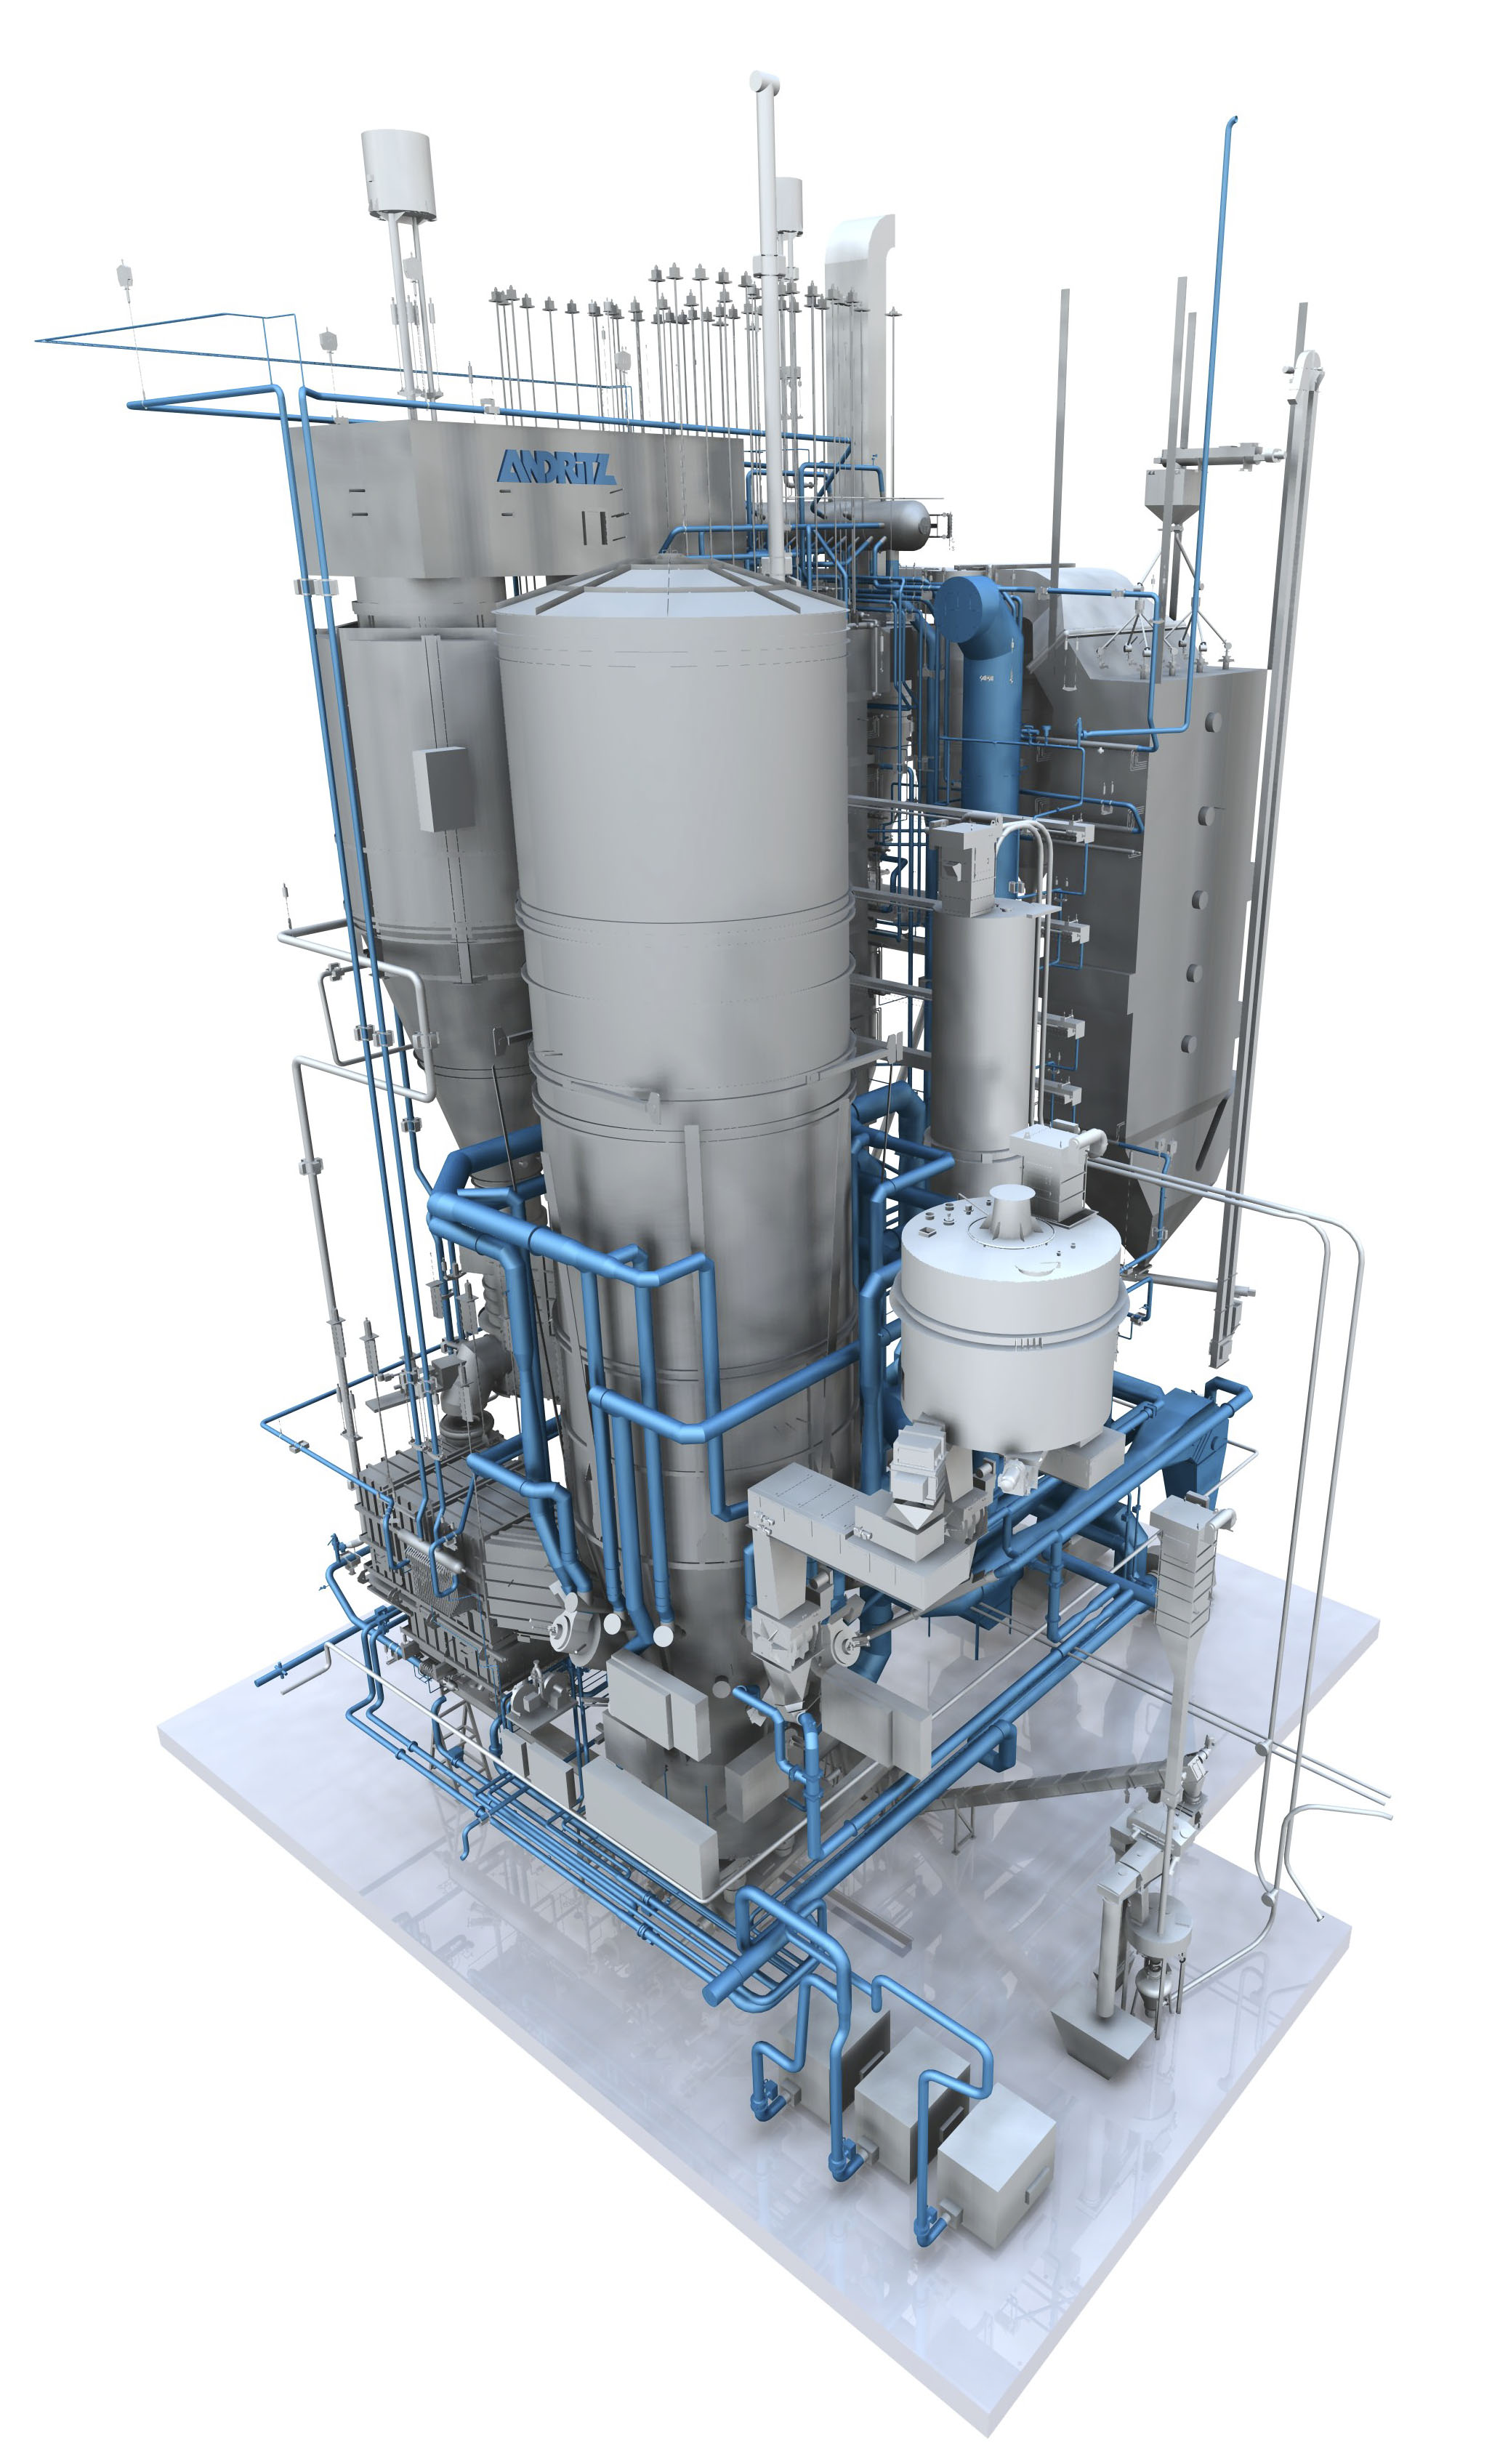 Andritz Ag To Supply Five Circulating Fluidized Bed